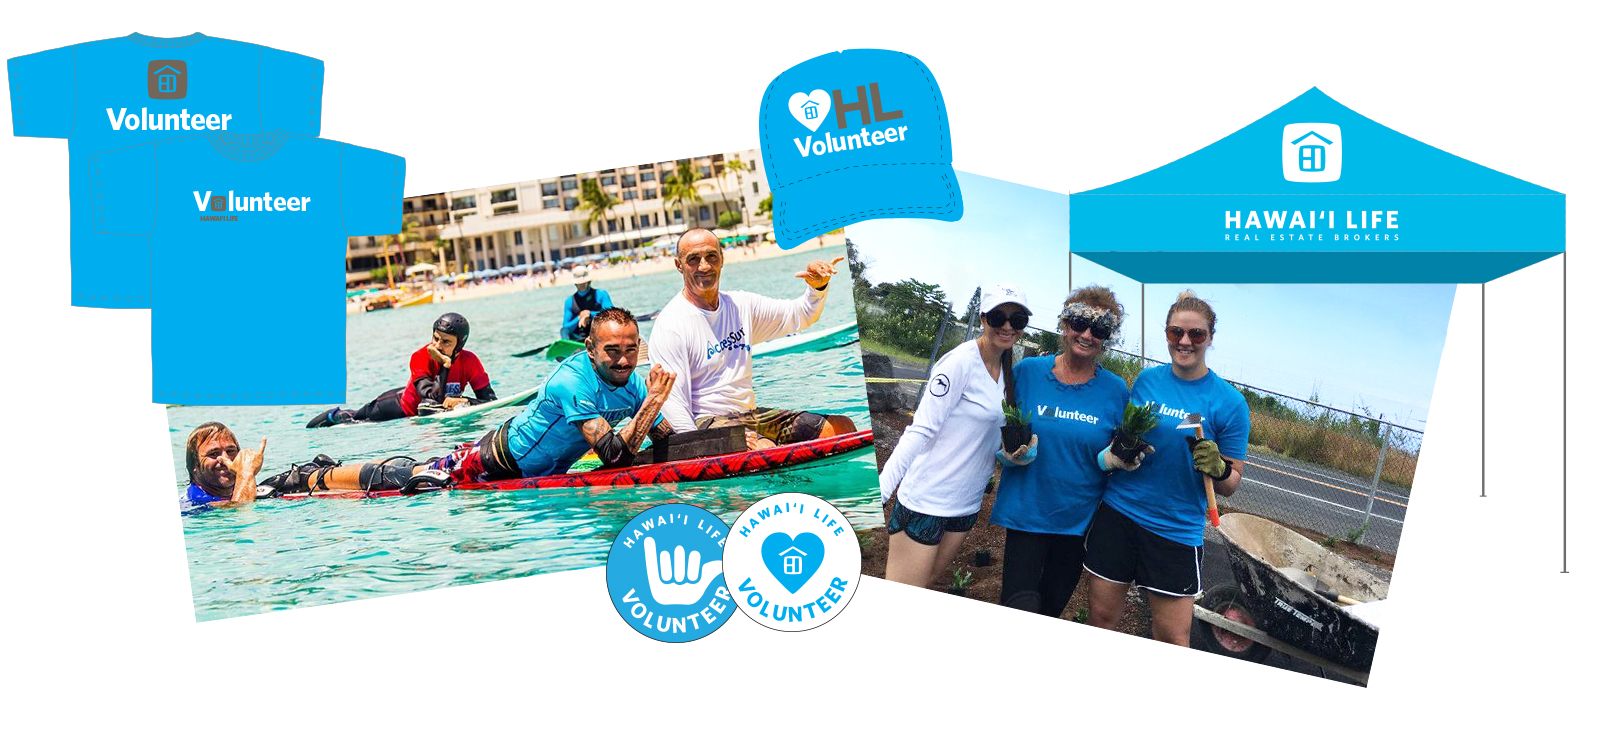 volunteer-collage-4.jpg